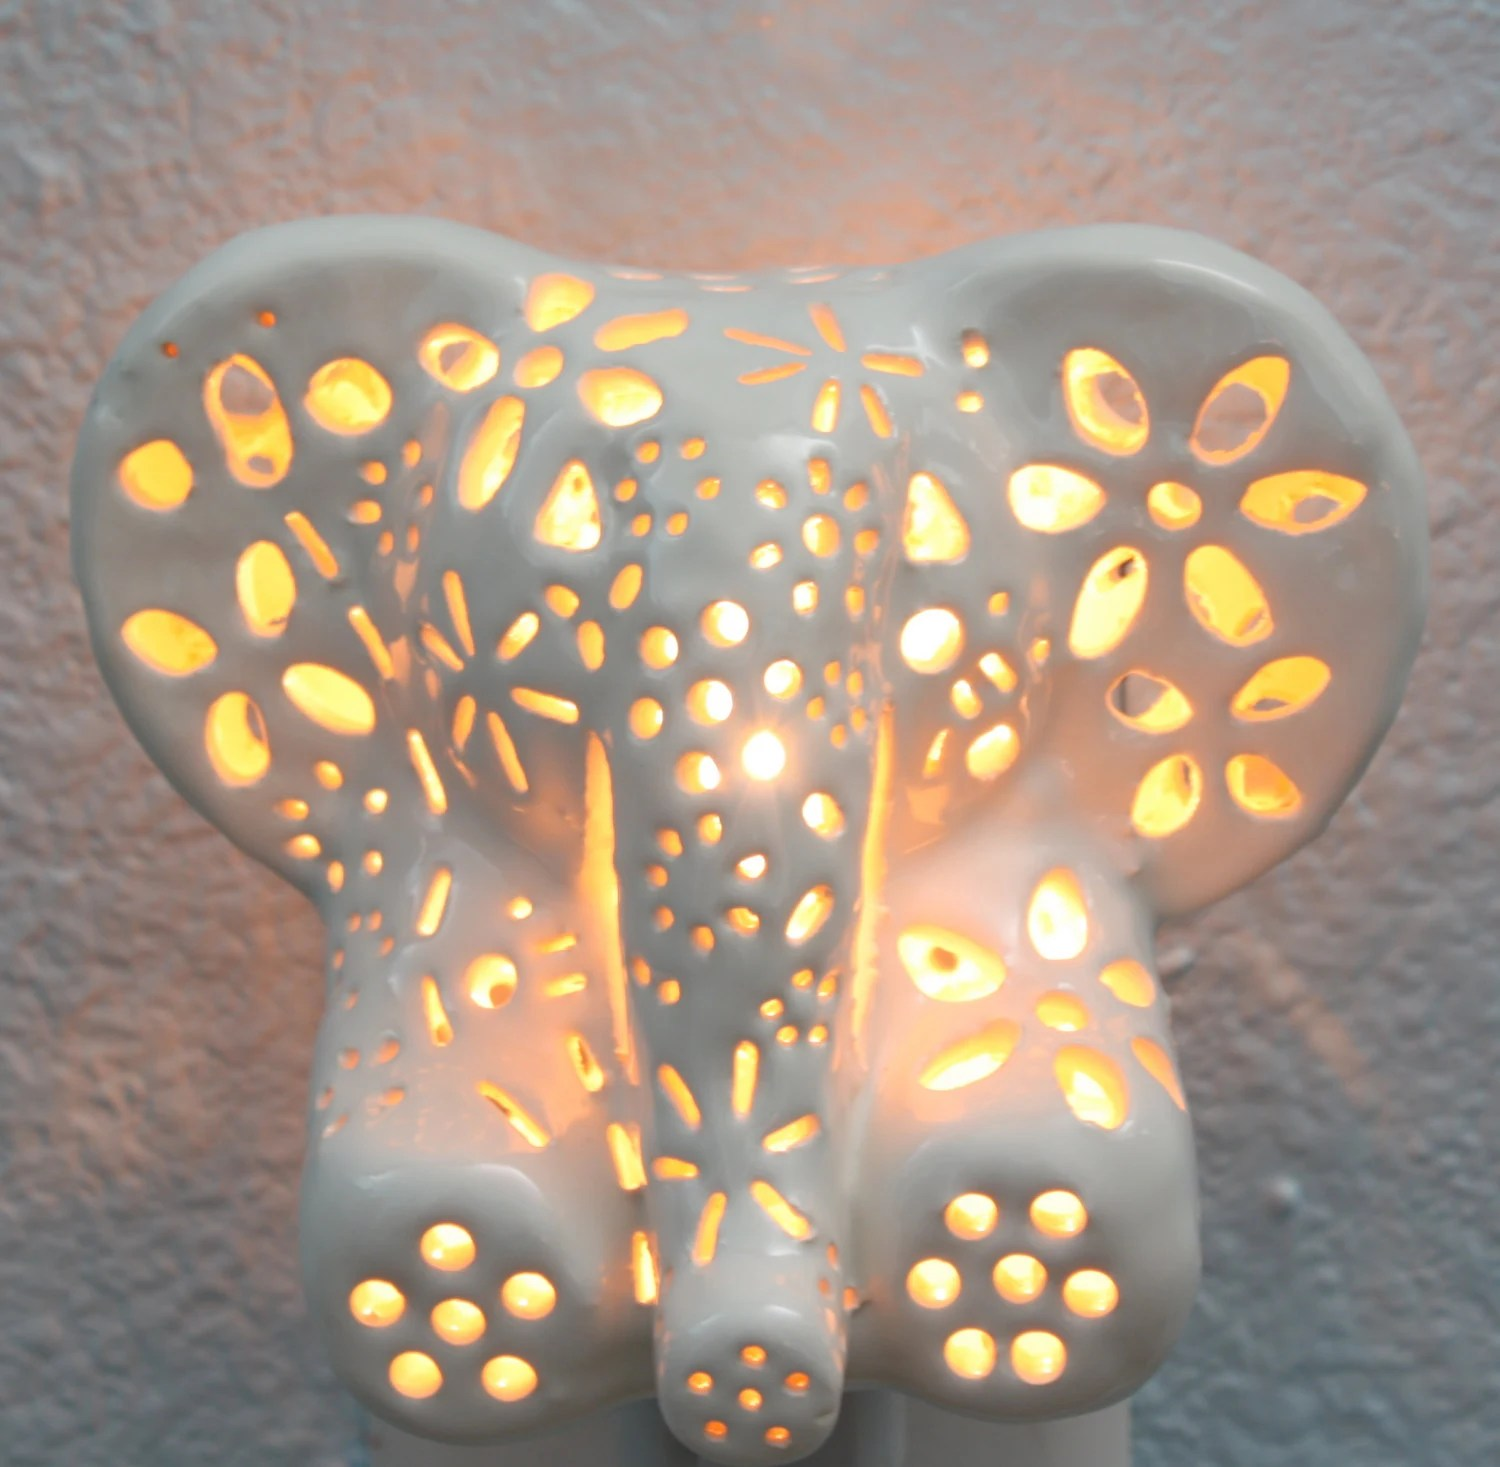 Elephant Night Light Ceramic Elephant Night Light By Lilyslights On Etsy